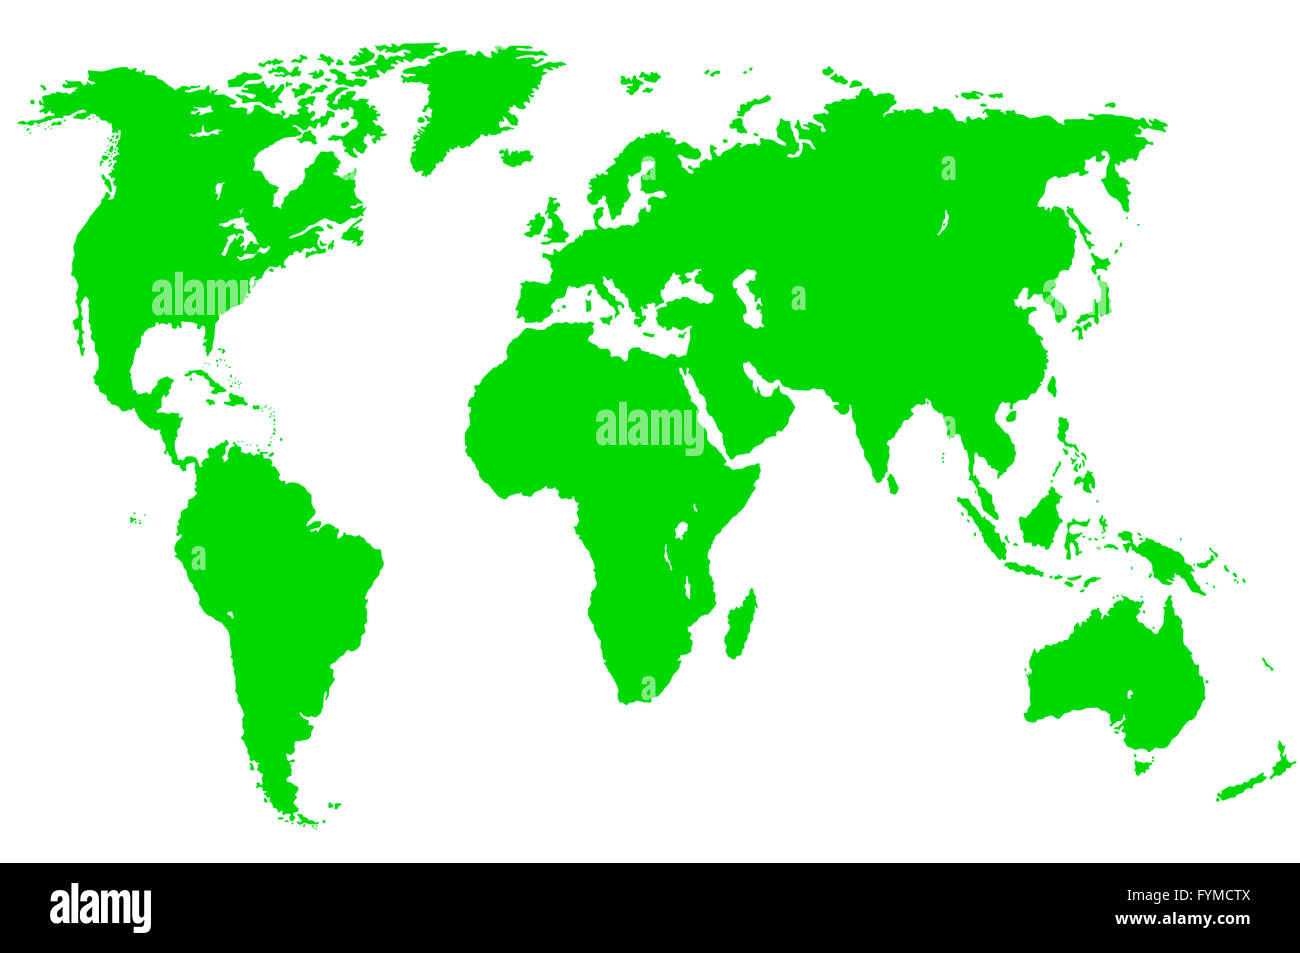 green world map, isolated - Stock Image